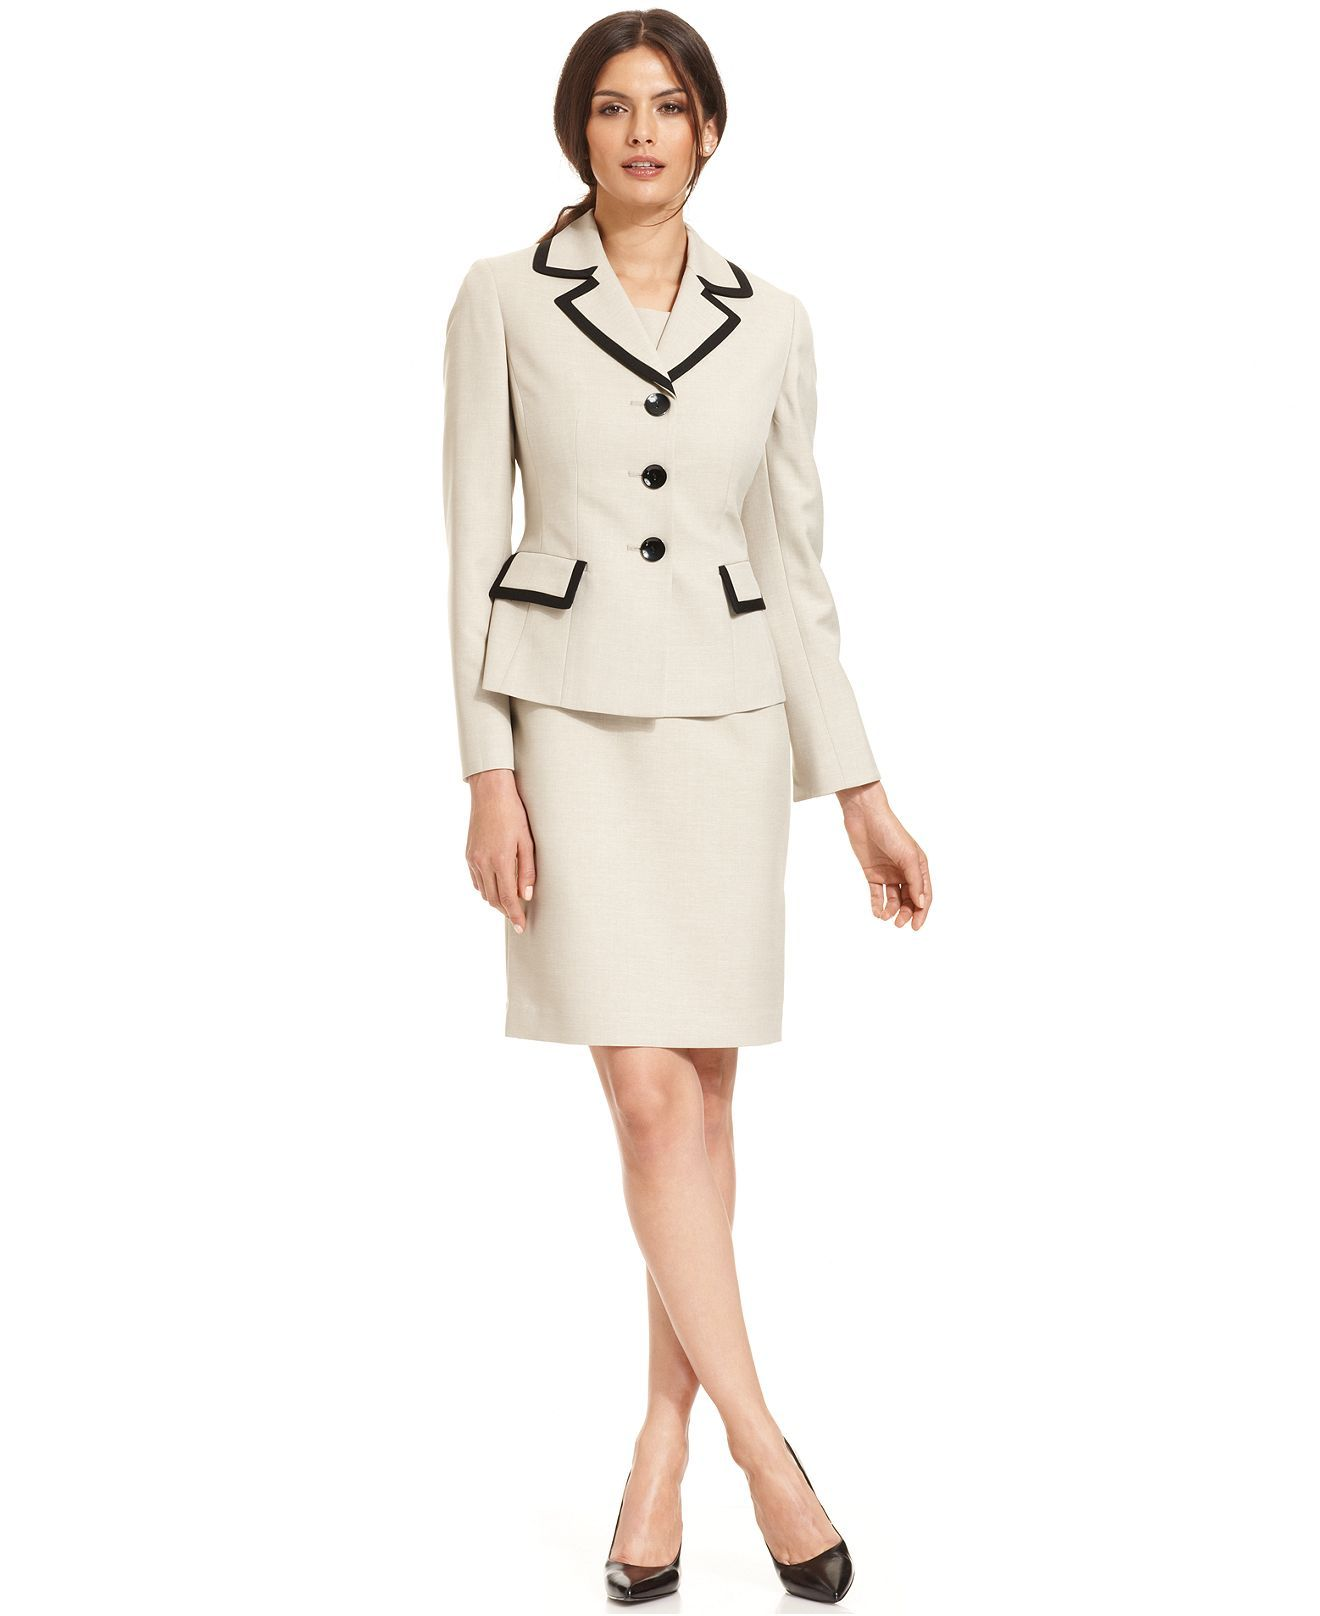 Le Suit Petite Contrast-Trim Blazer & Sleeveless Sheath Dress - Petite Suits & Separates - Women - Macy's-Another great Career to Evening kind of suit. These things will continue you further on; and they will look good on you.